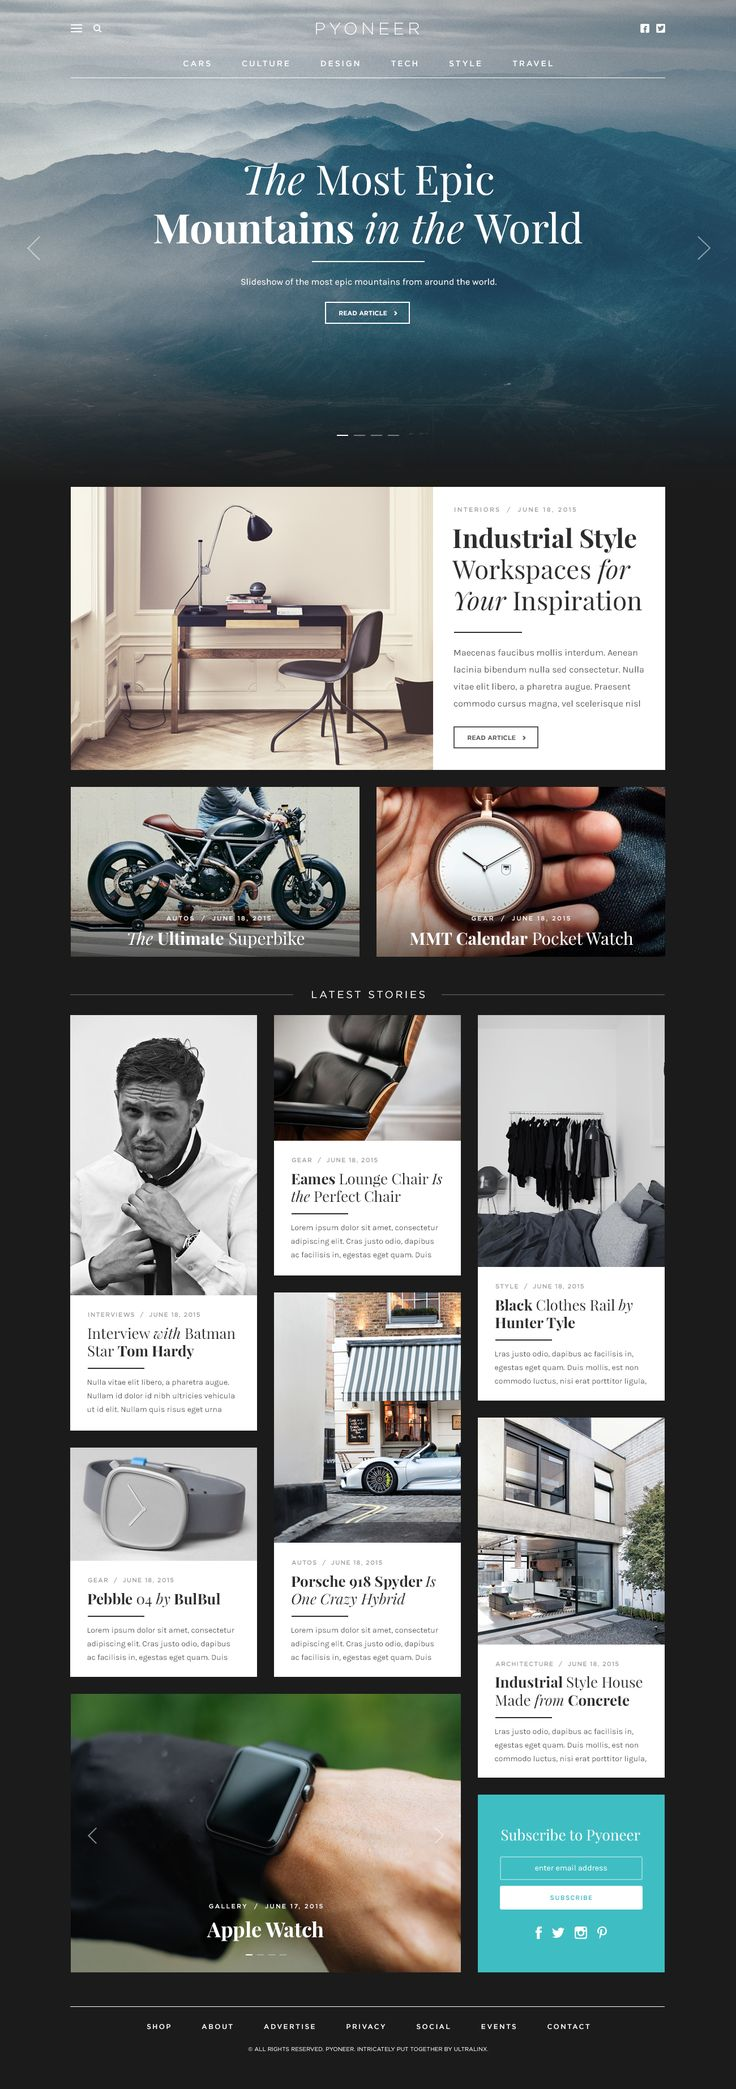 Pyoneer Blog/Magazine Layout by Oliur | dribbble